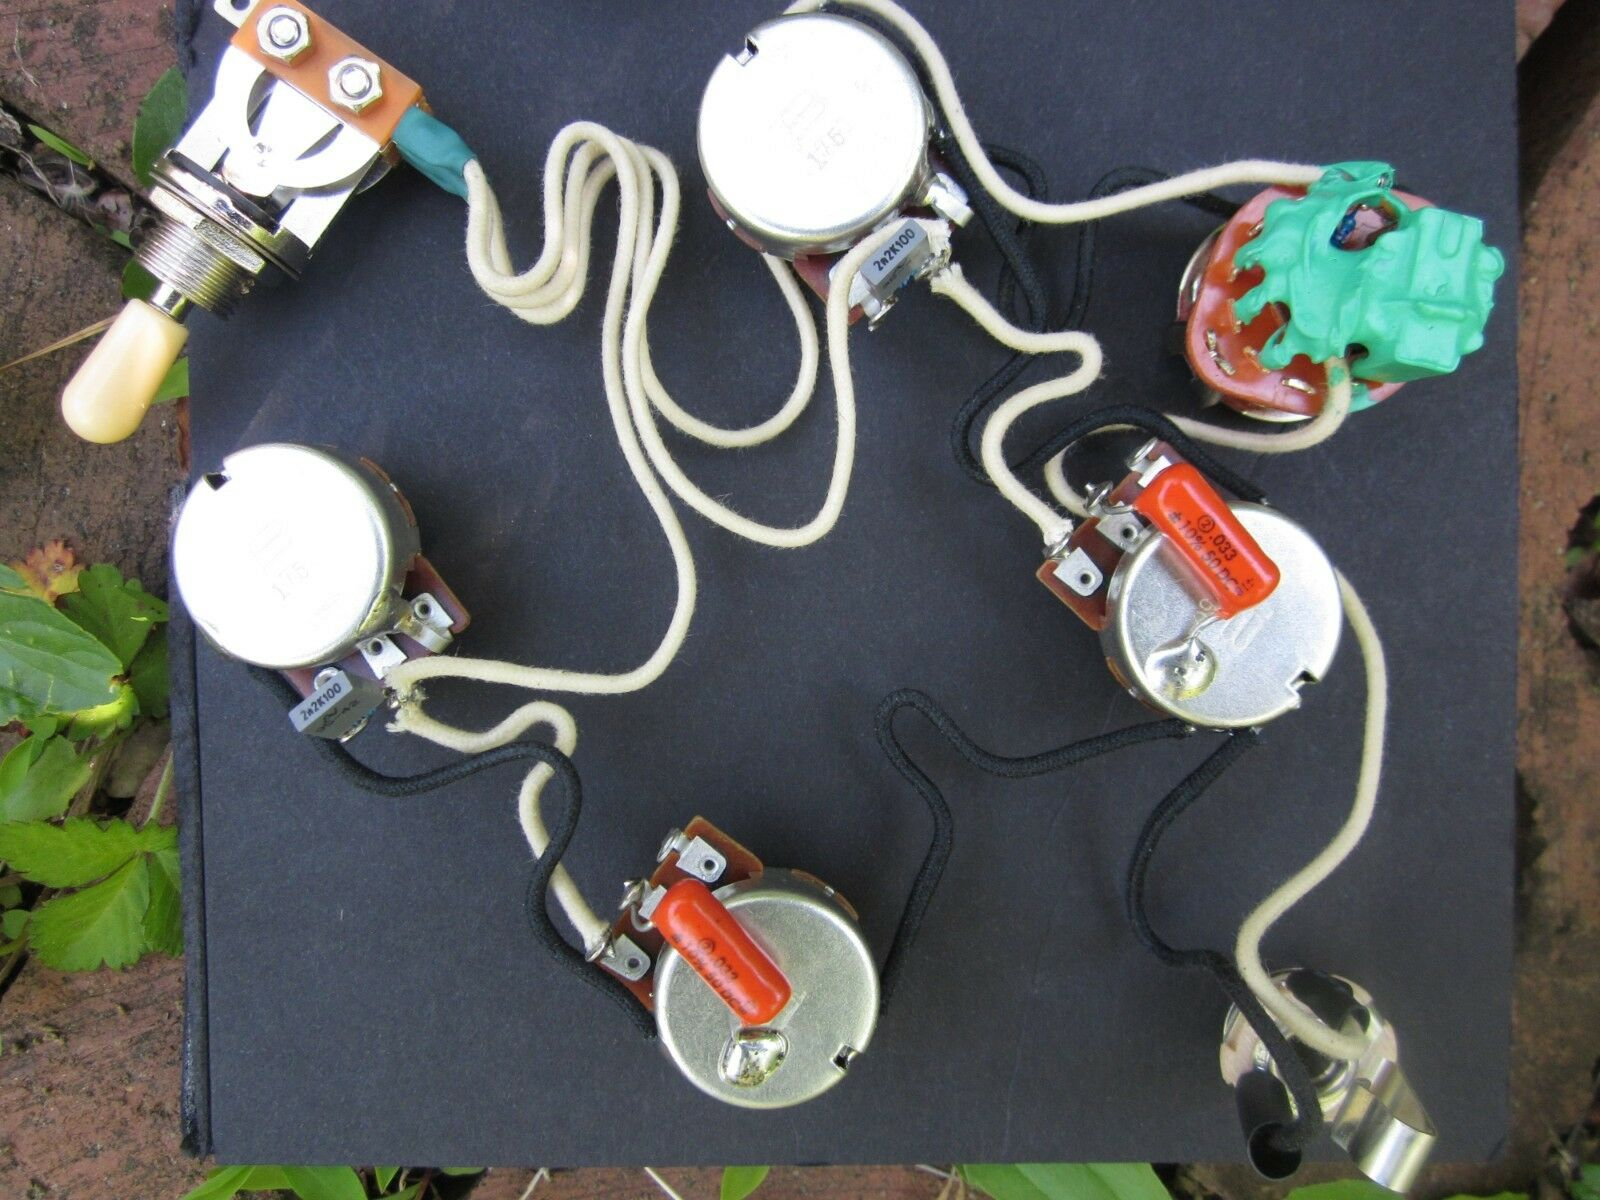 Epiphone 335sg Wiring Harness W Varitone Custom Wired Kellingsound Sg 1 Of 4only Available